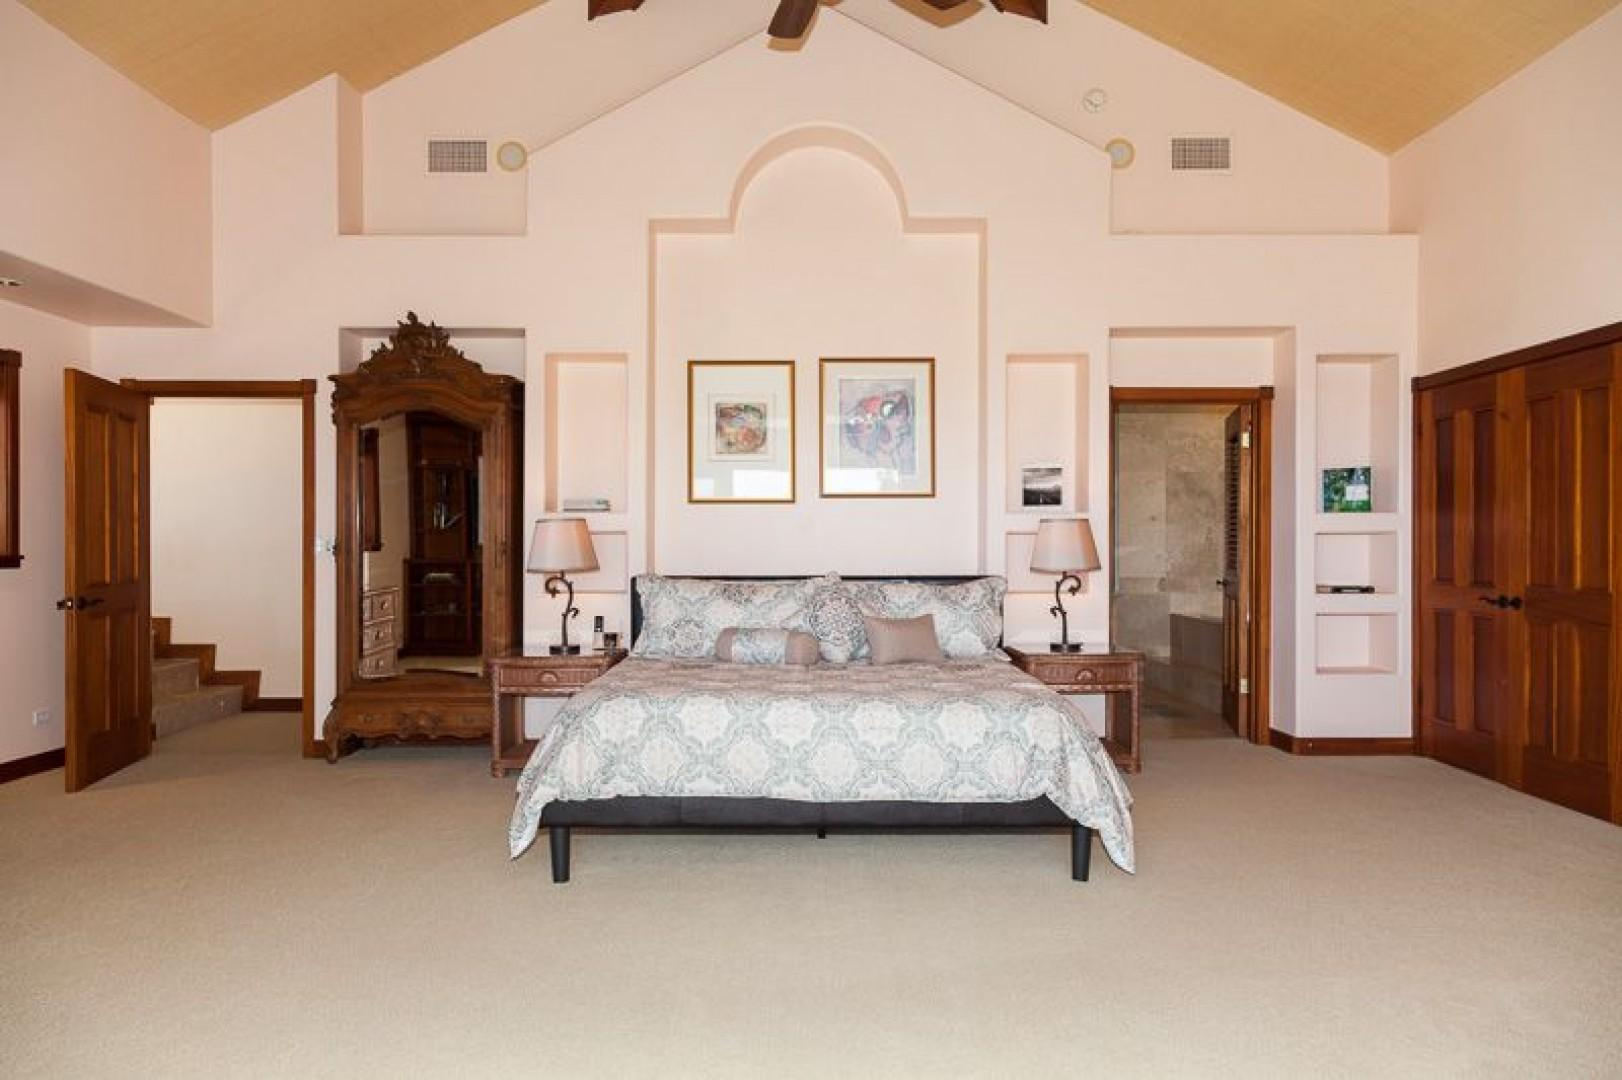 South Master Suite with king bed and wood closets